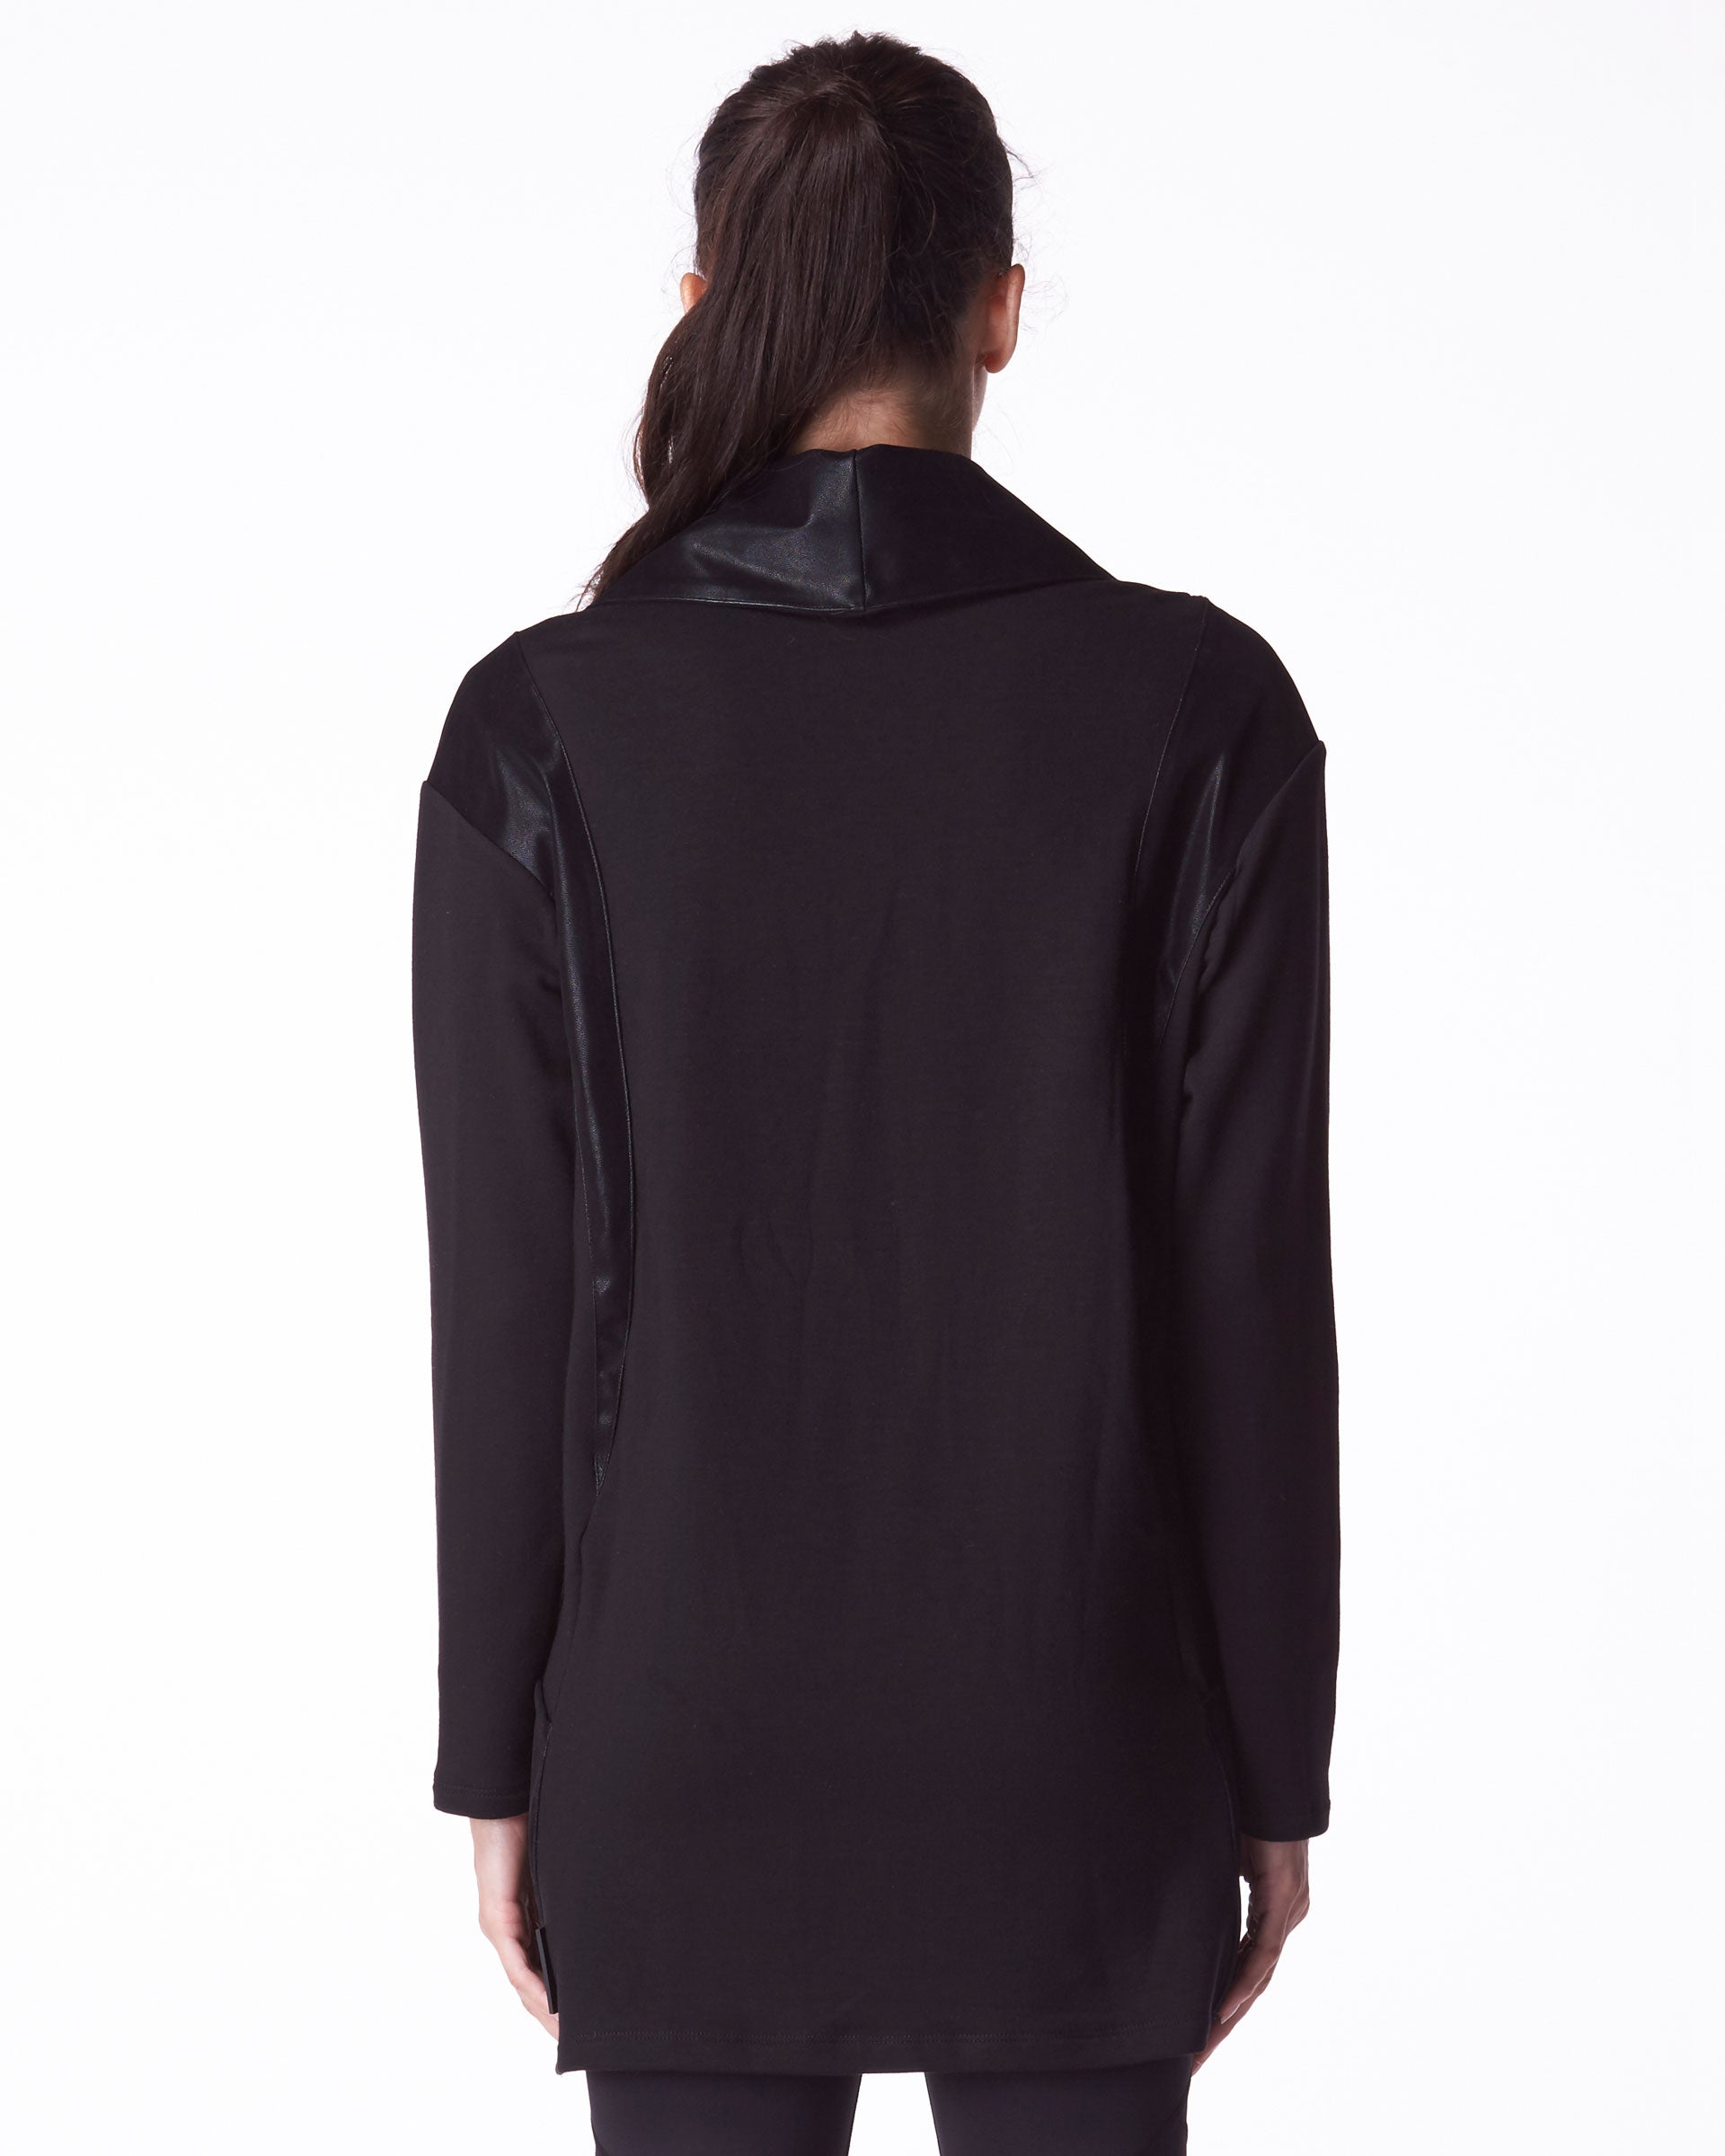 Blade Wrap Jacket - Black